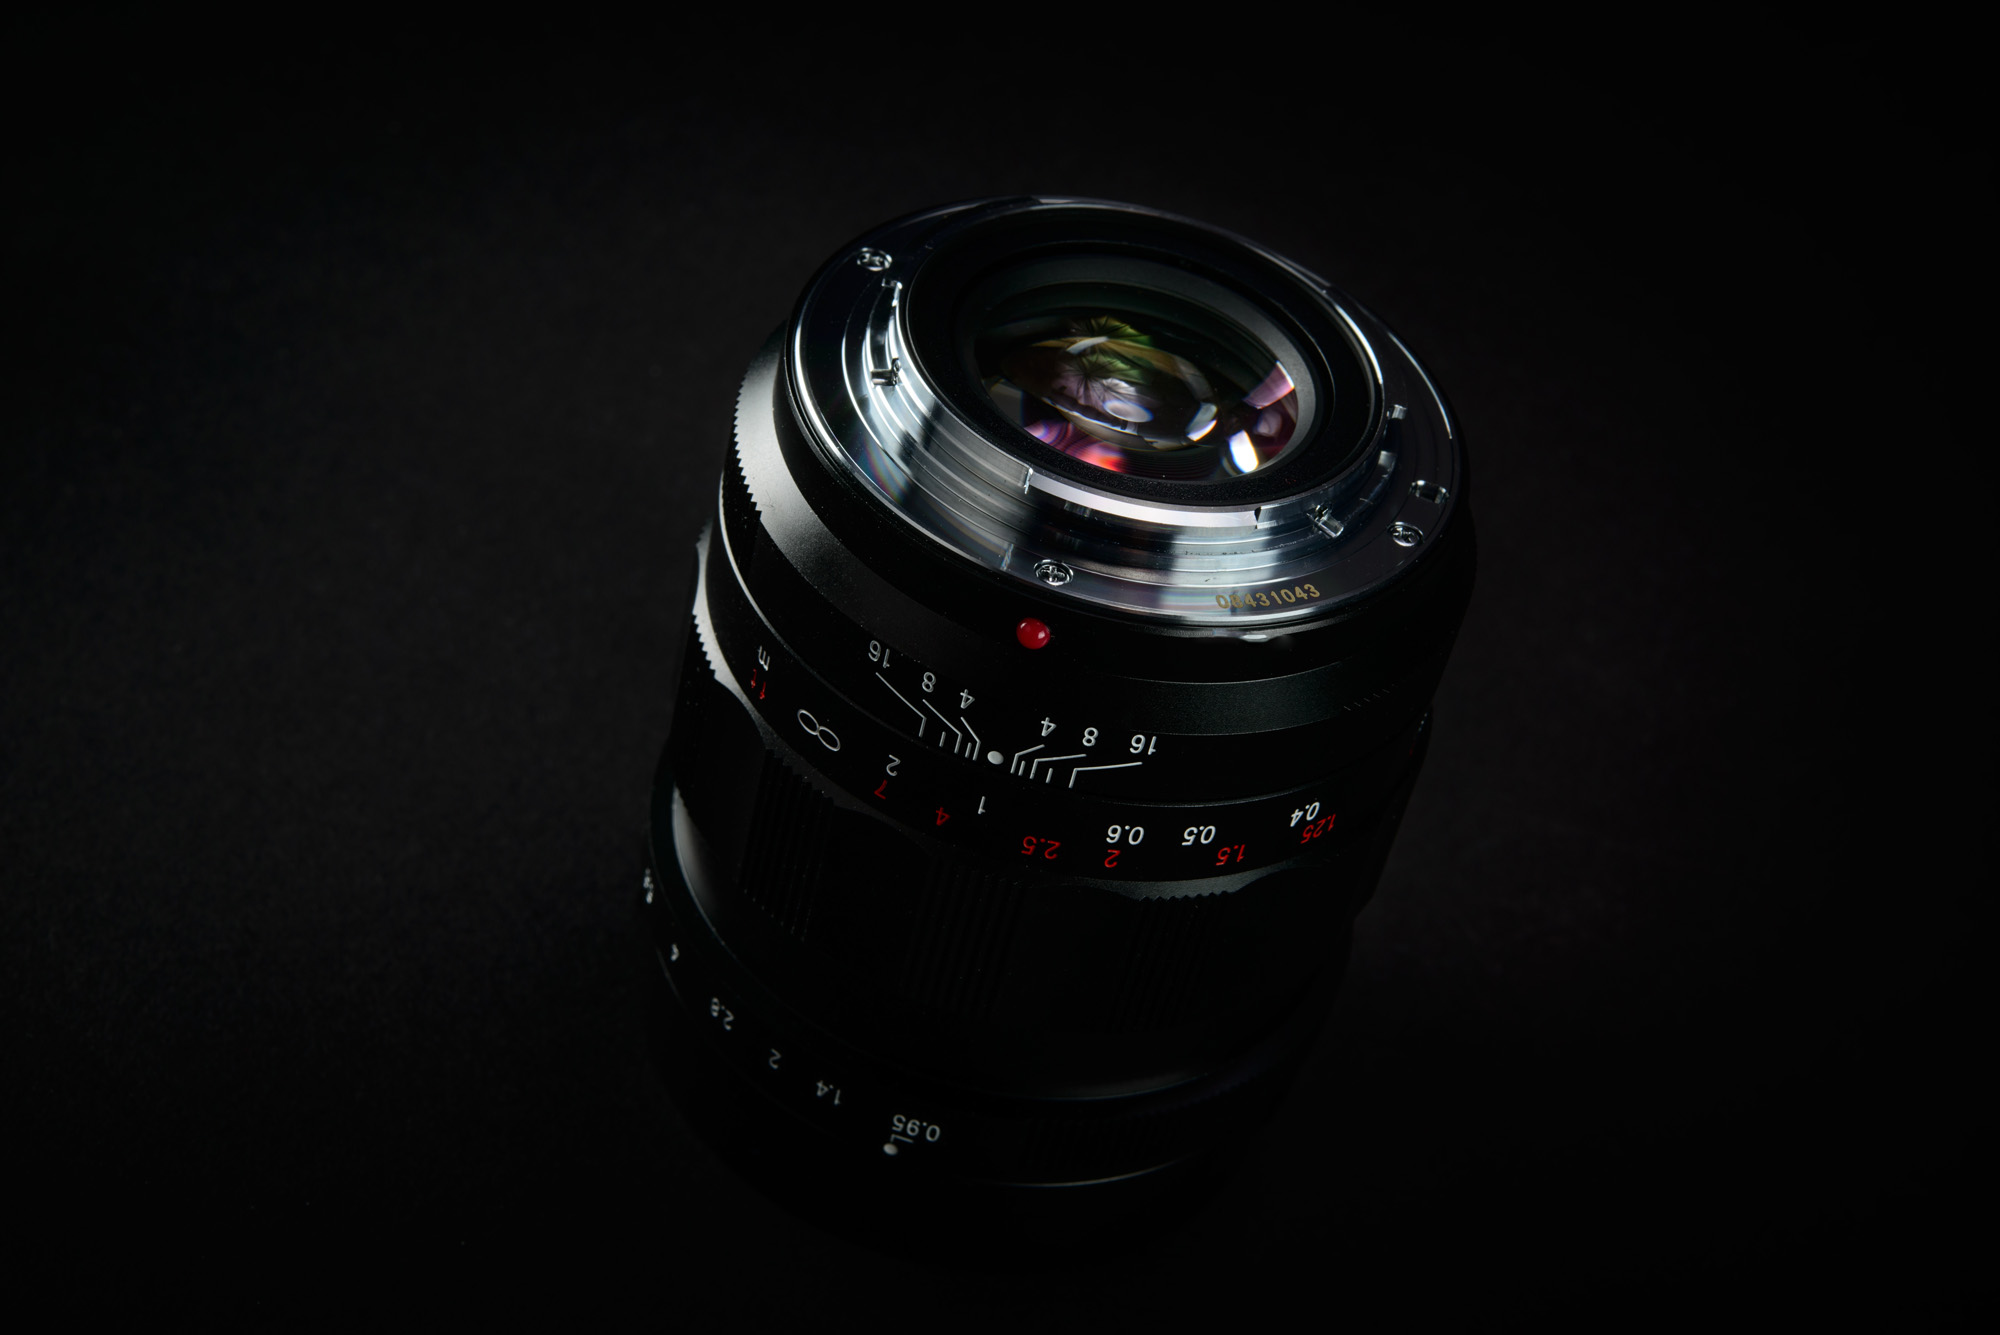 voigtlander-nokton-25mm-f0.95-review-03